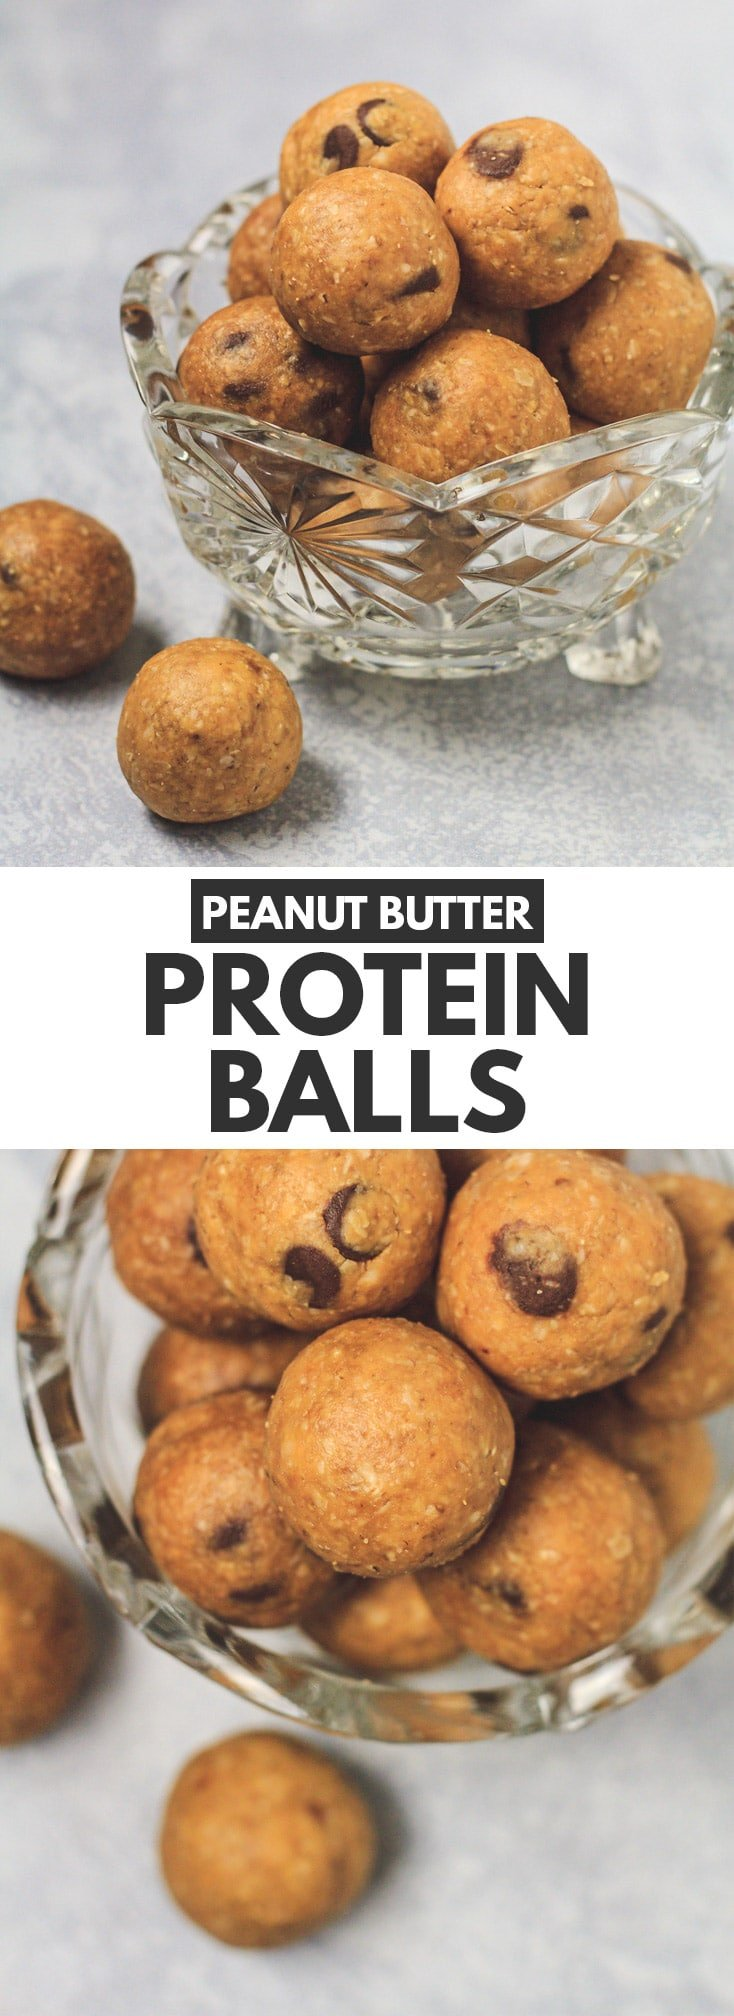 No-Bake Peanut Butter Protein Balls - Deliciously fudgy bites that are packed full of peanut butter flavour. Made from just a few simple ingredients, these energy balls make the perfect healthy snack! #peanutbutter #energybites #proteinballs #healthyrecipes